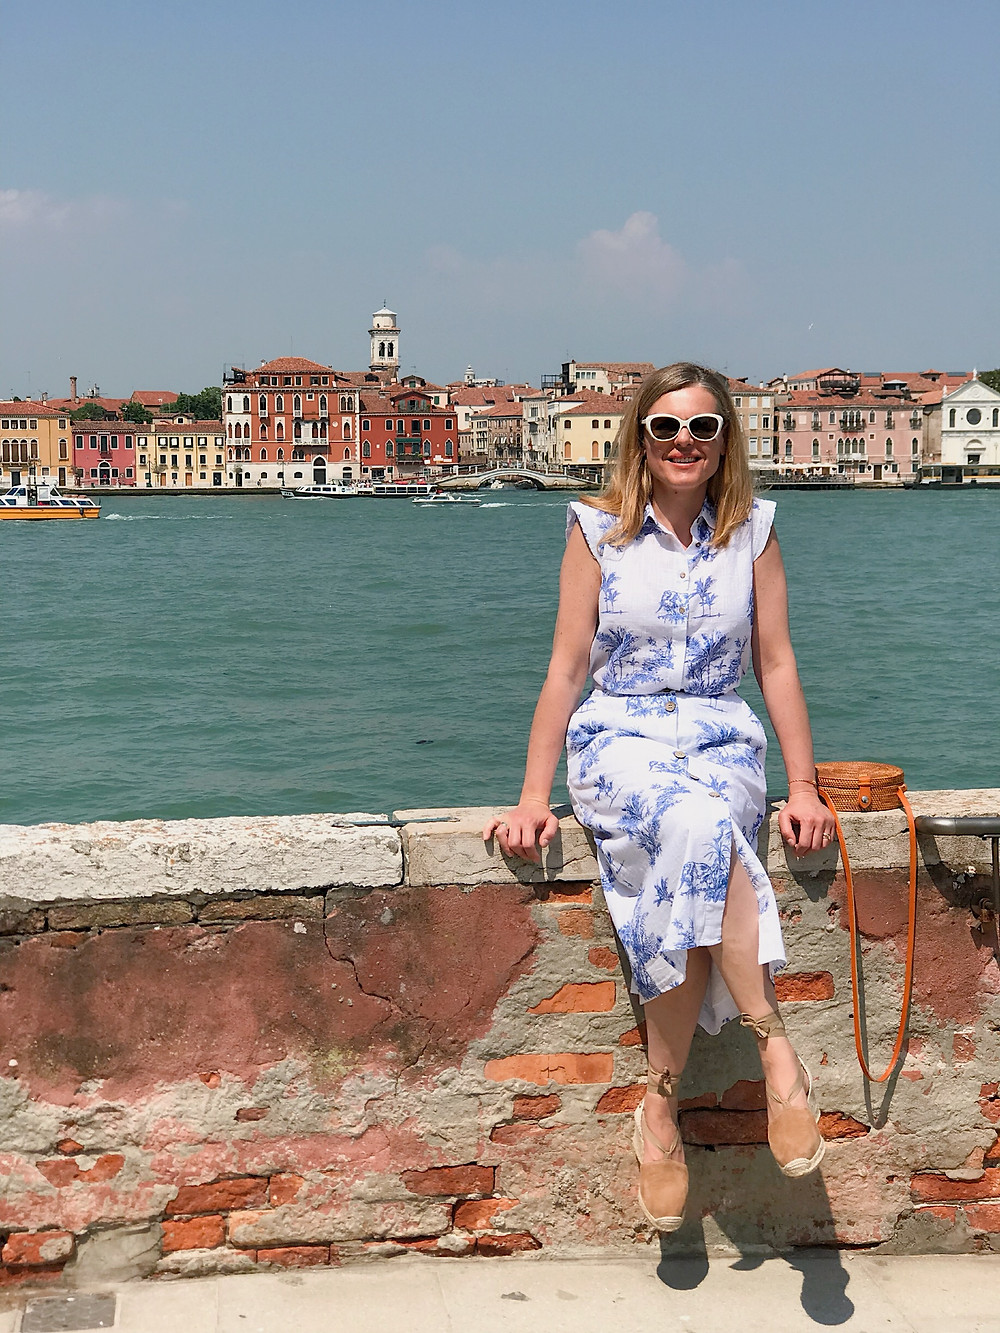 woman sitting on brick wall overlooking Venice